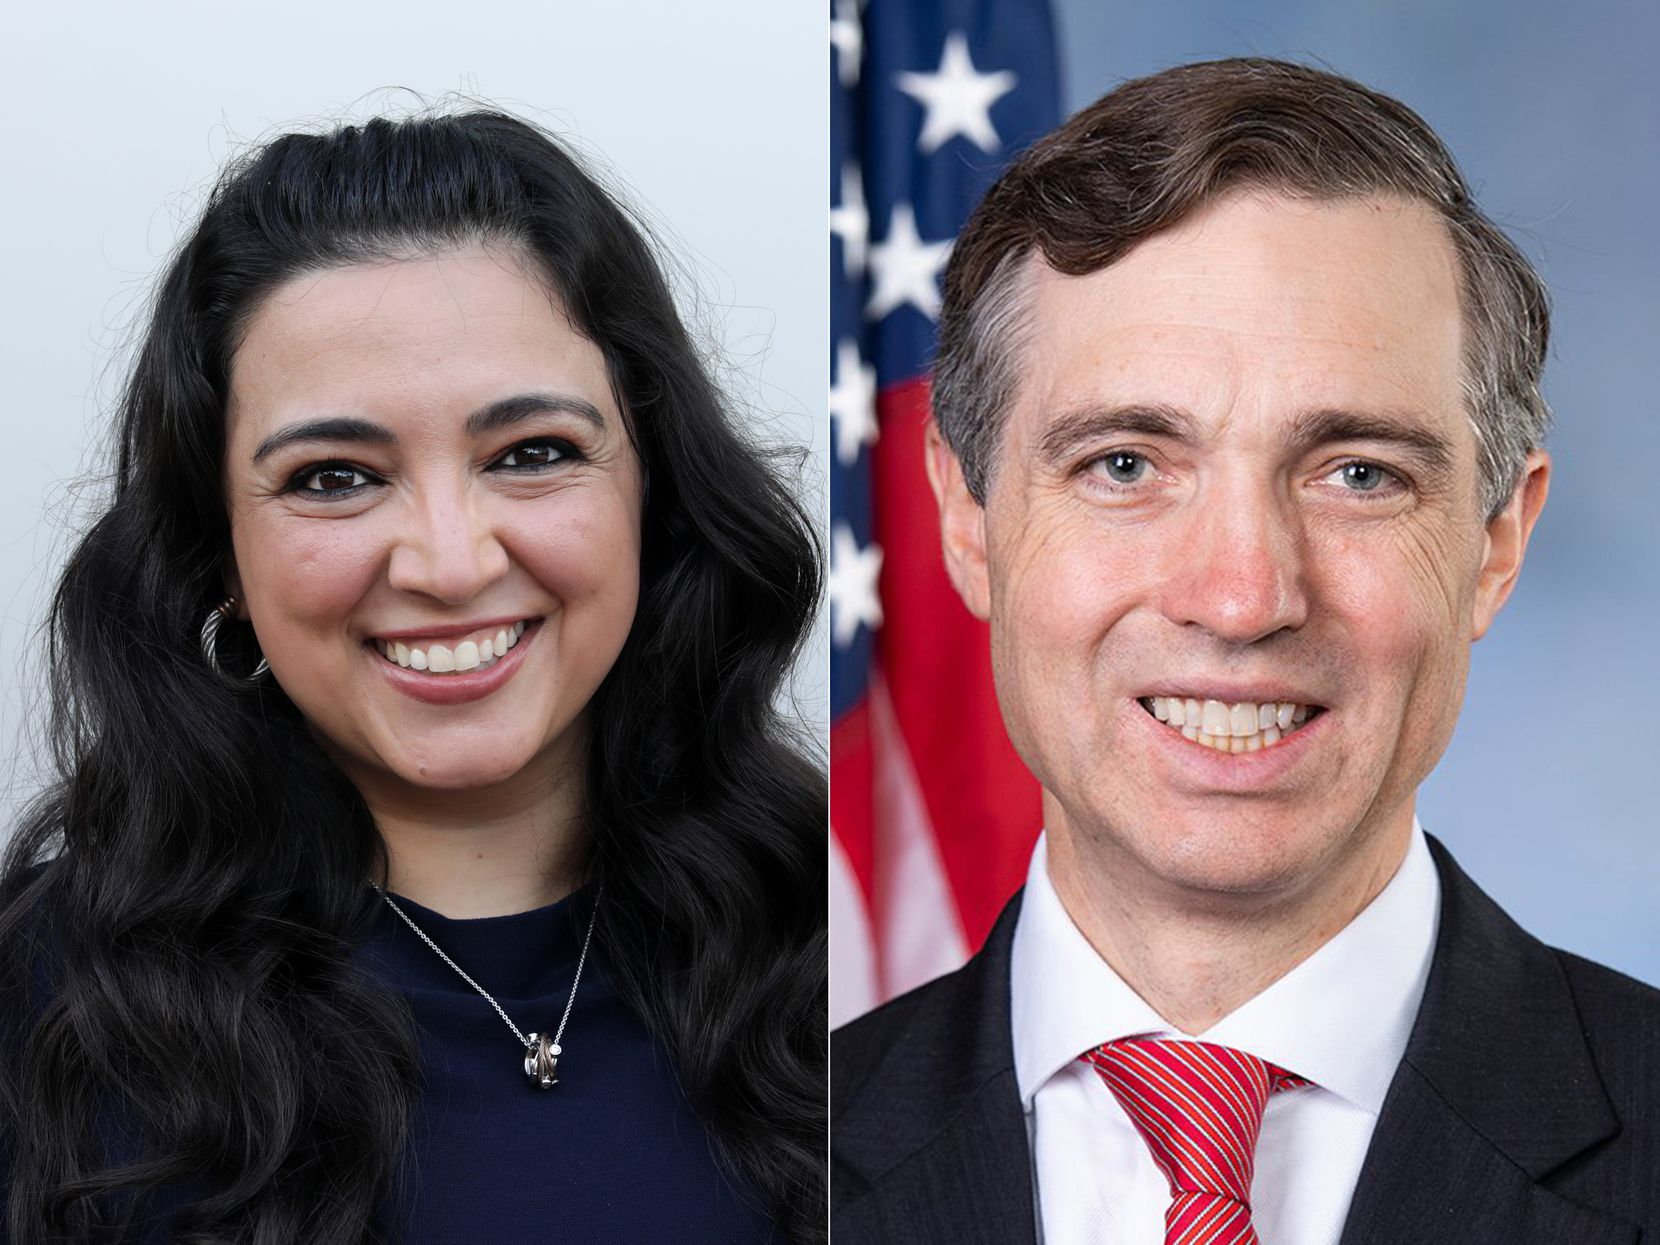 Lulu Seikaly, left, photographed in downtown Plano, TX, on Sep. 17, 2020. U.S. Rep. Van Taylor, R-Plano shown in this undated photo.